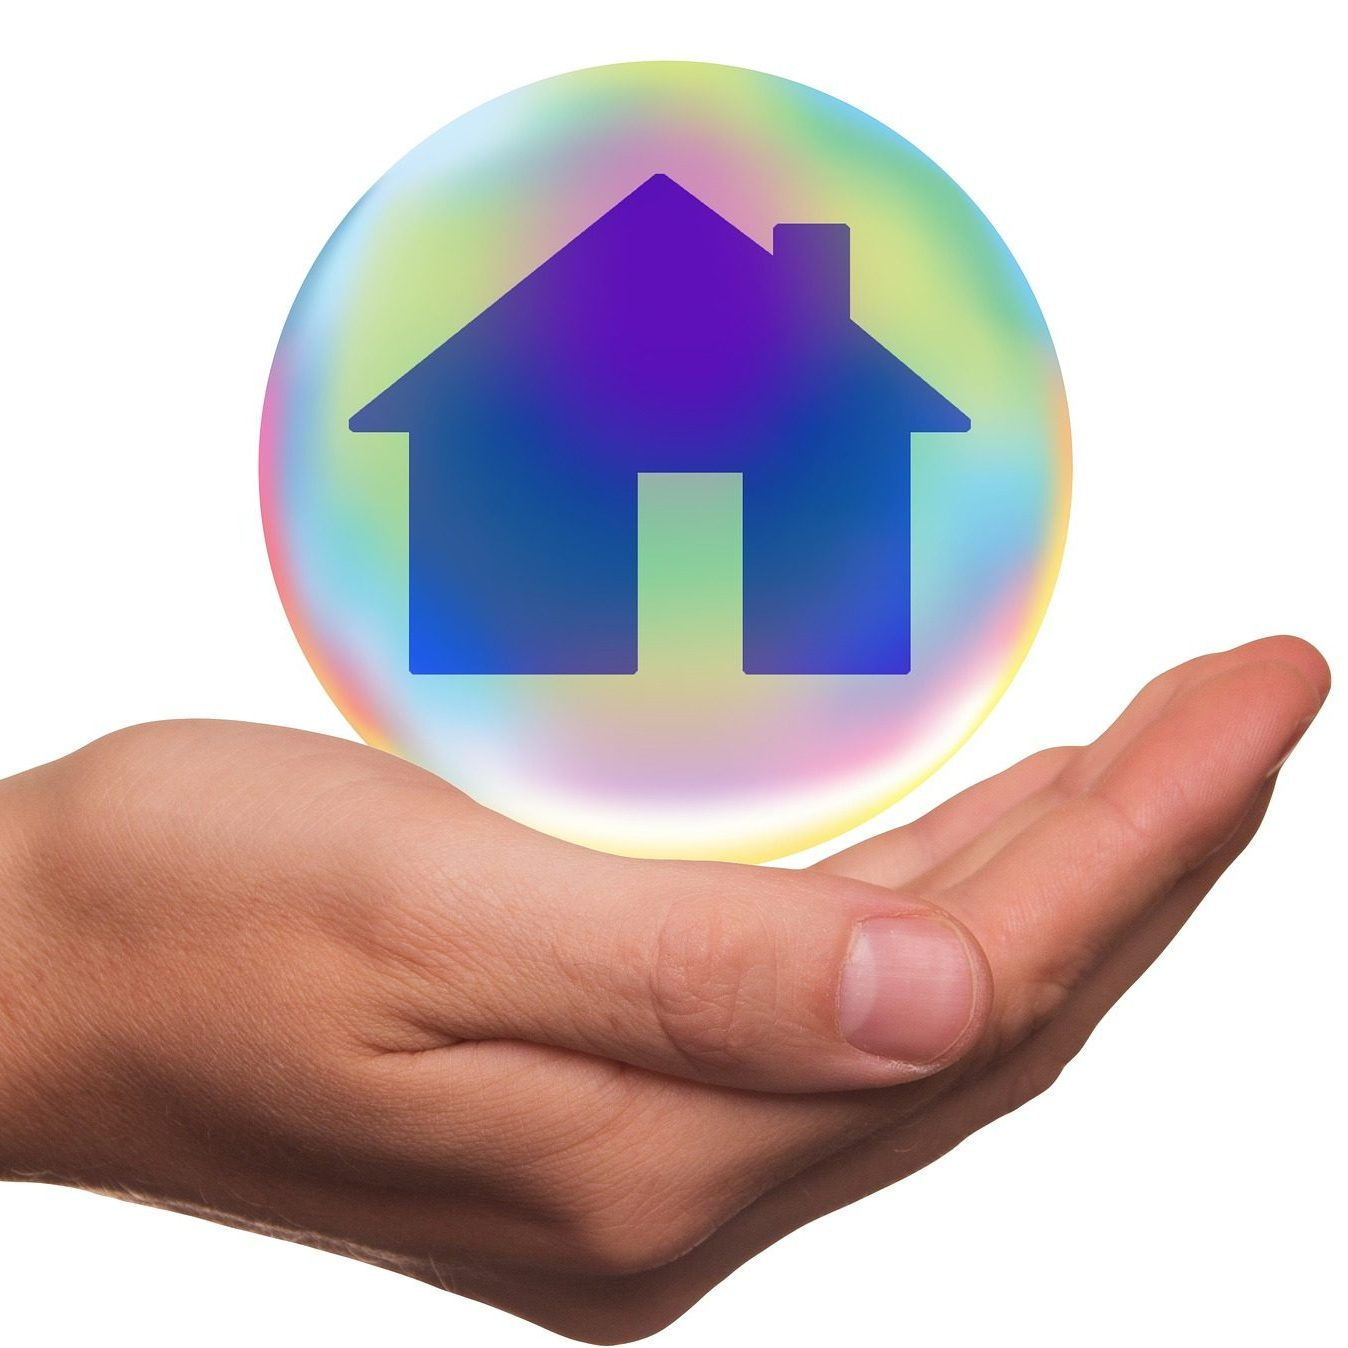 hand cupped holding bubble graphic of home